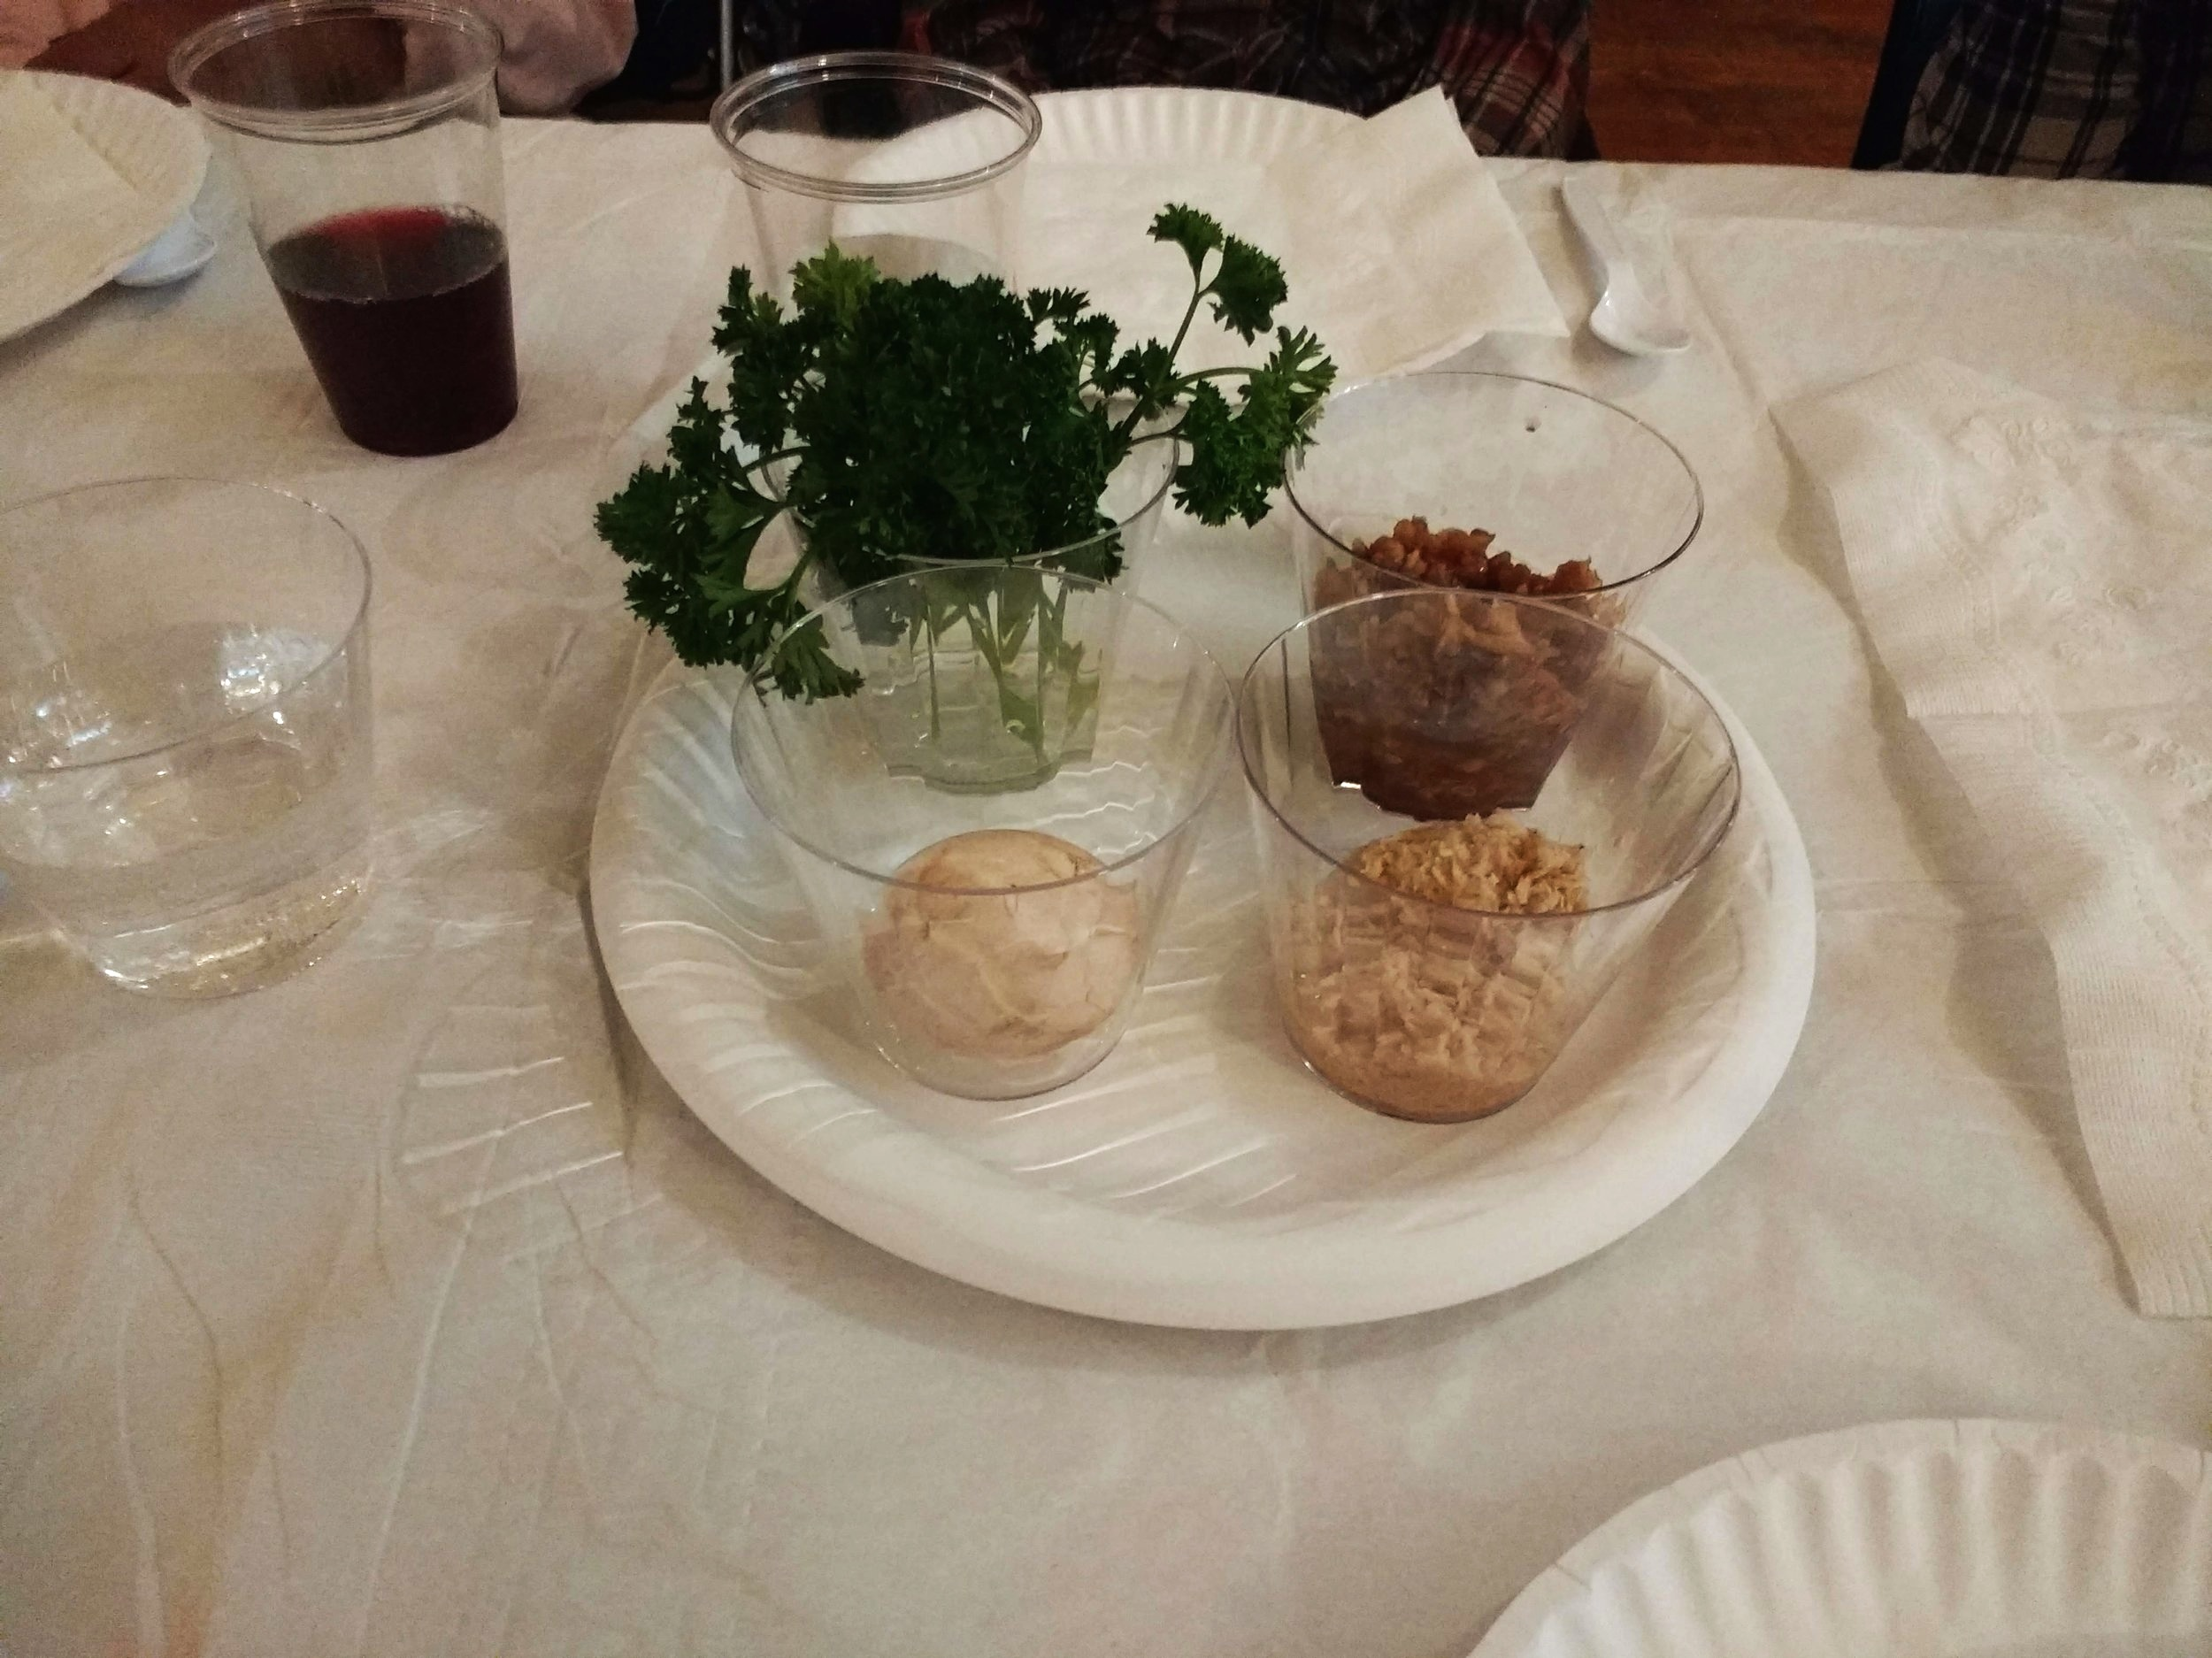 Passover seder elements